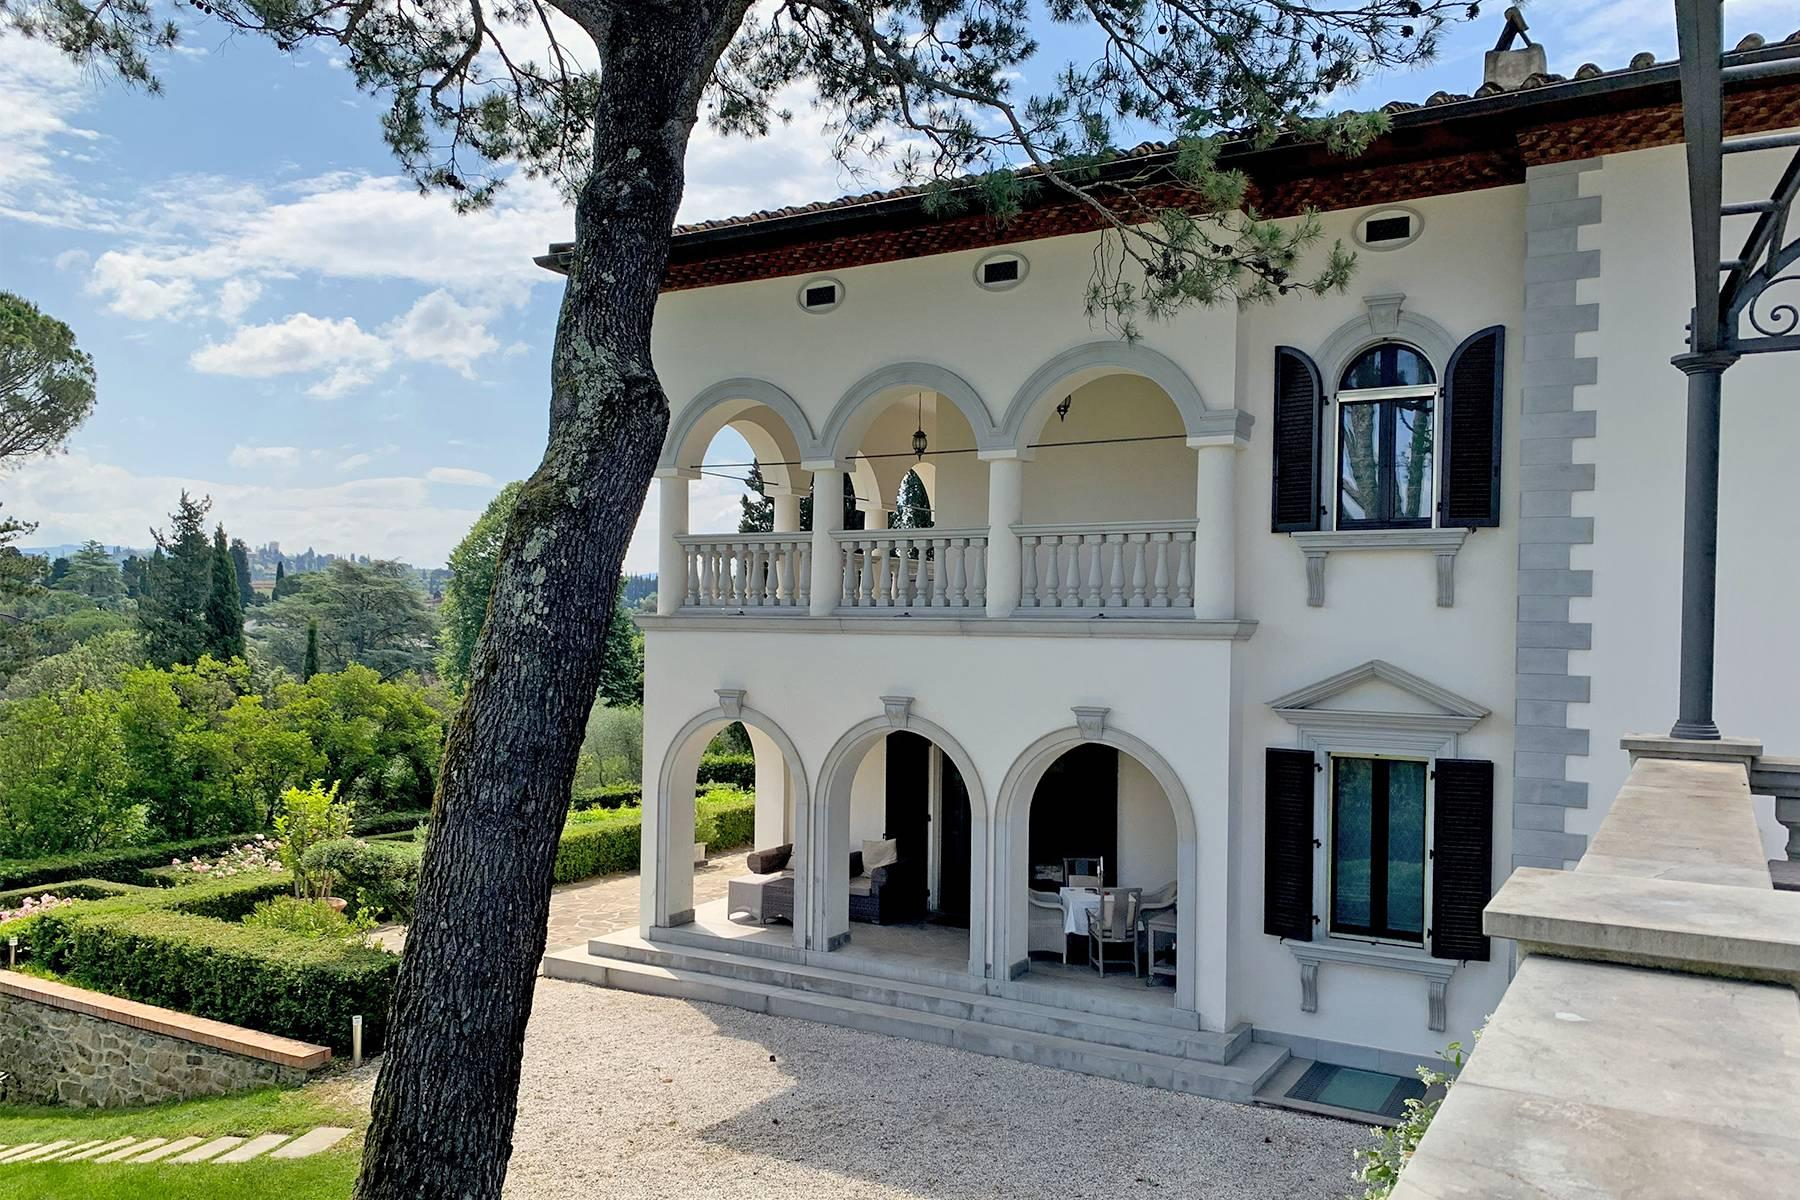 Splendid villa with pool on the Pian dei Giullari hill in Florence - 2